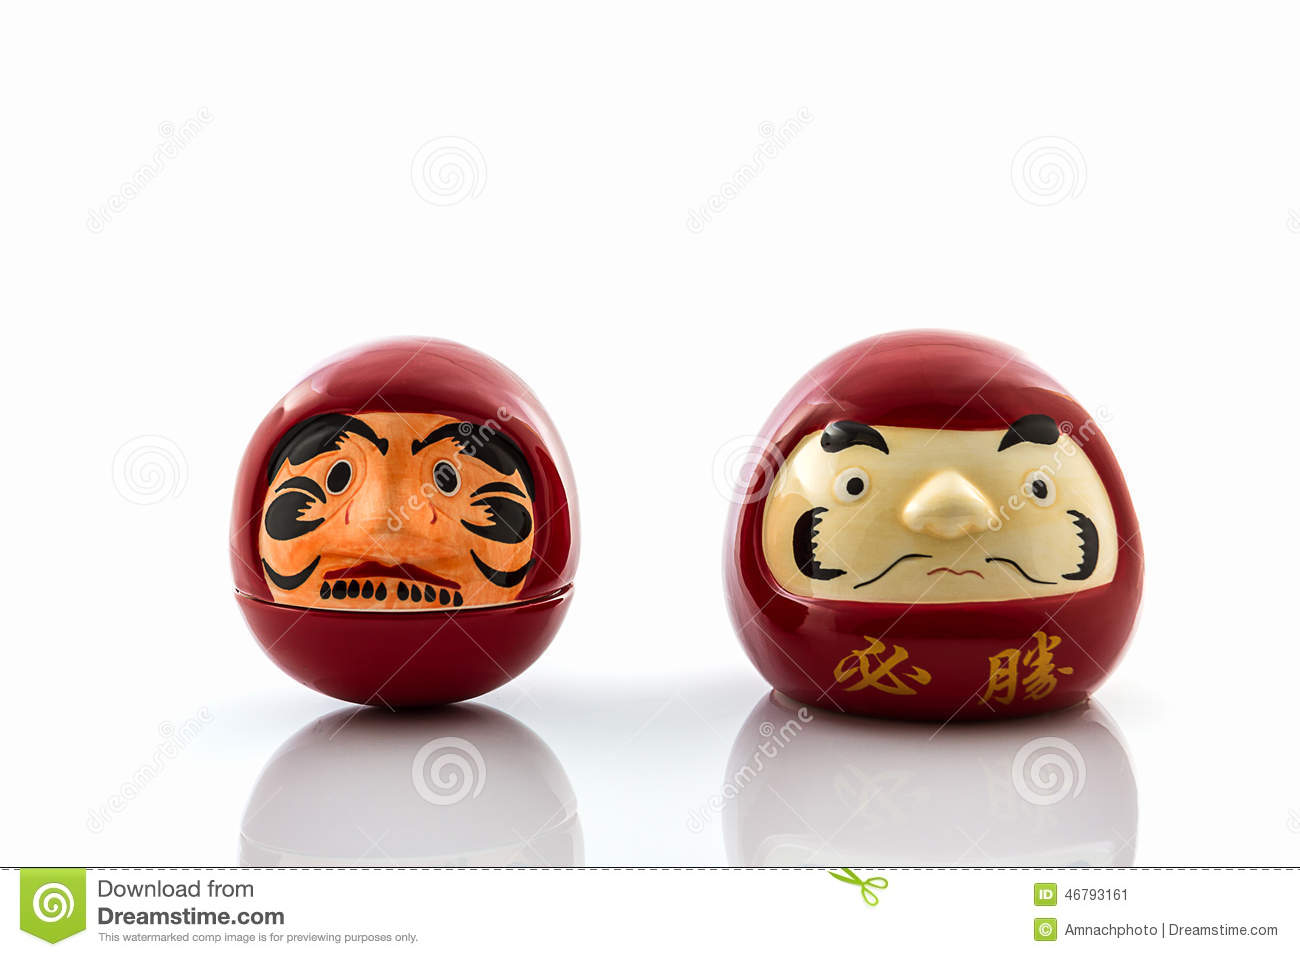 Darumas lucky doll symbols of japans cultural and spiritual tr royalty free stock photo biocorpaavc Image collections